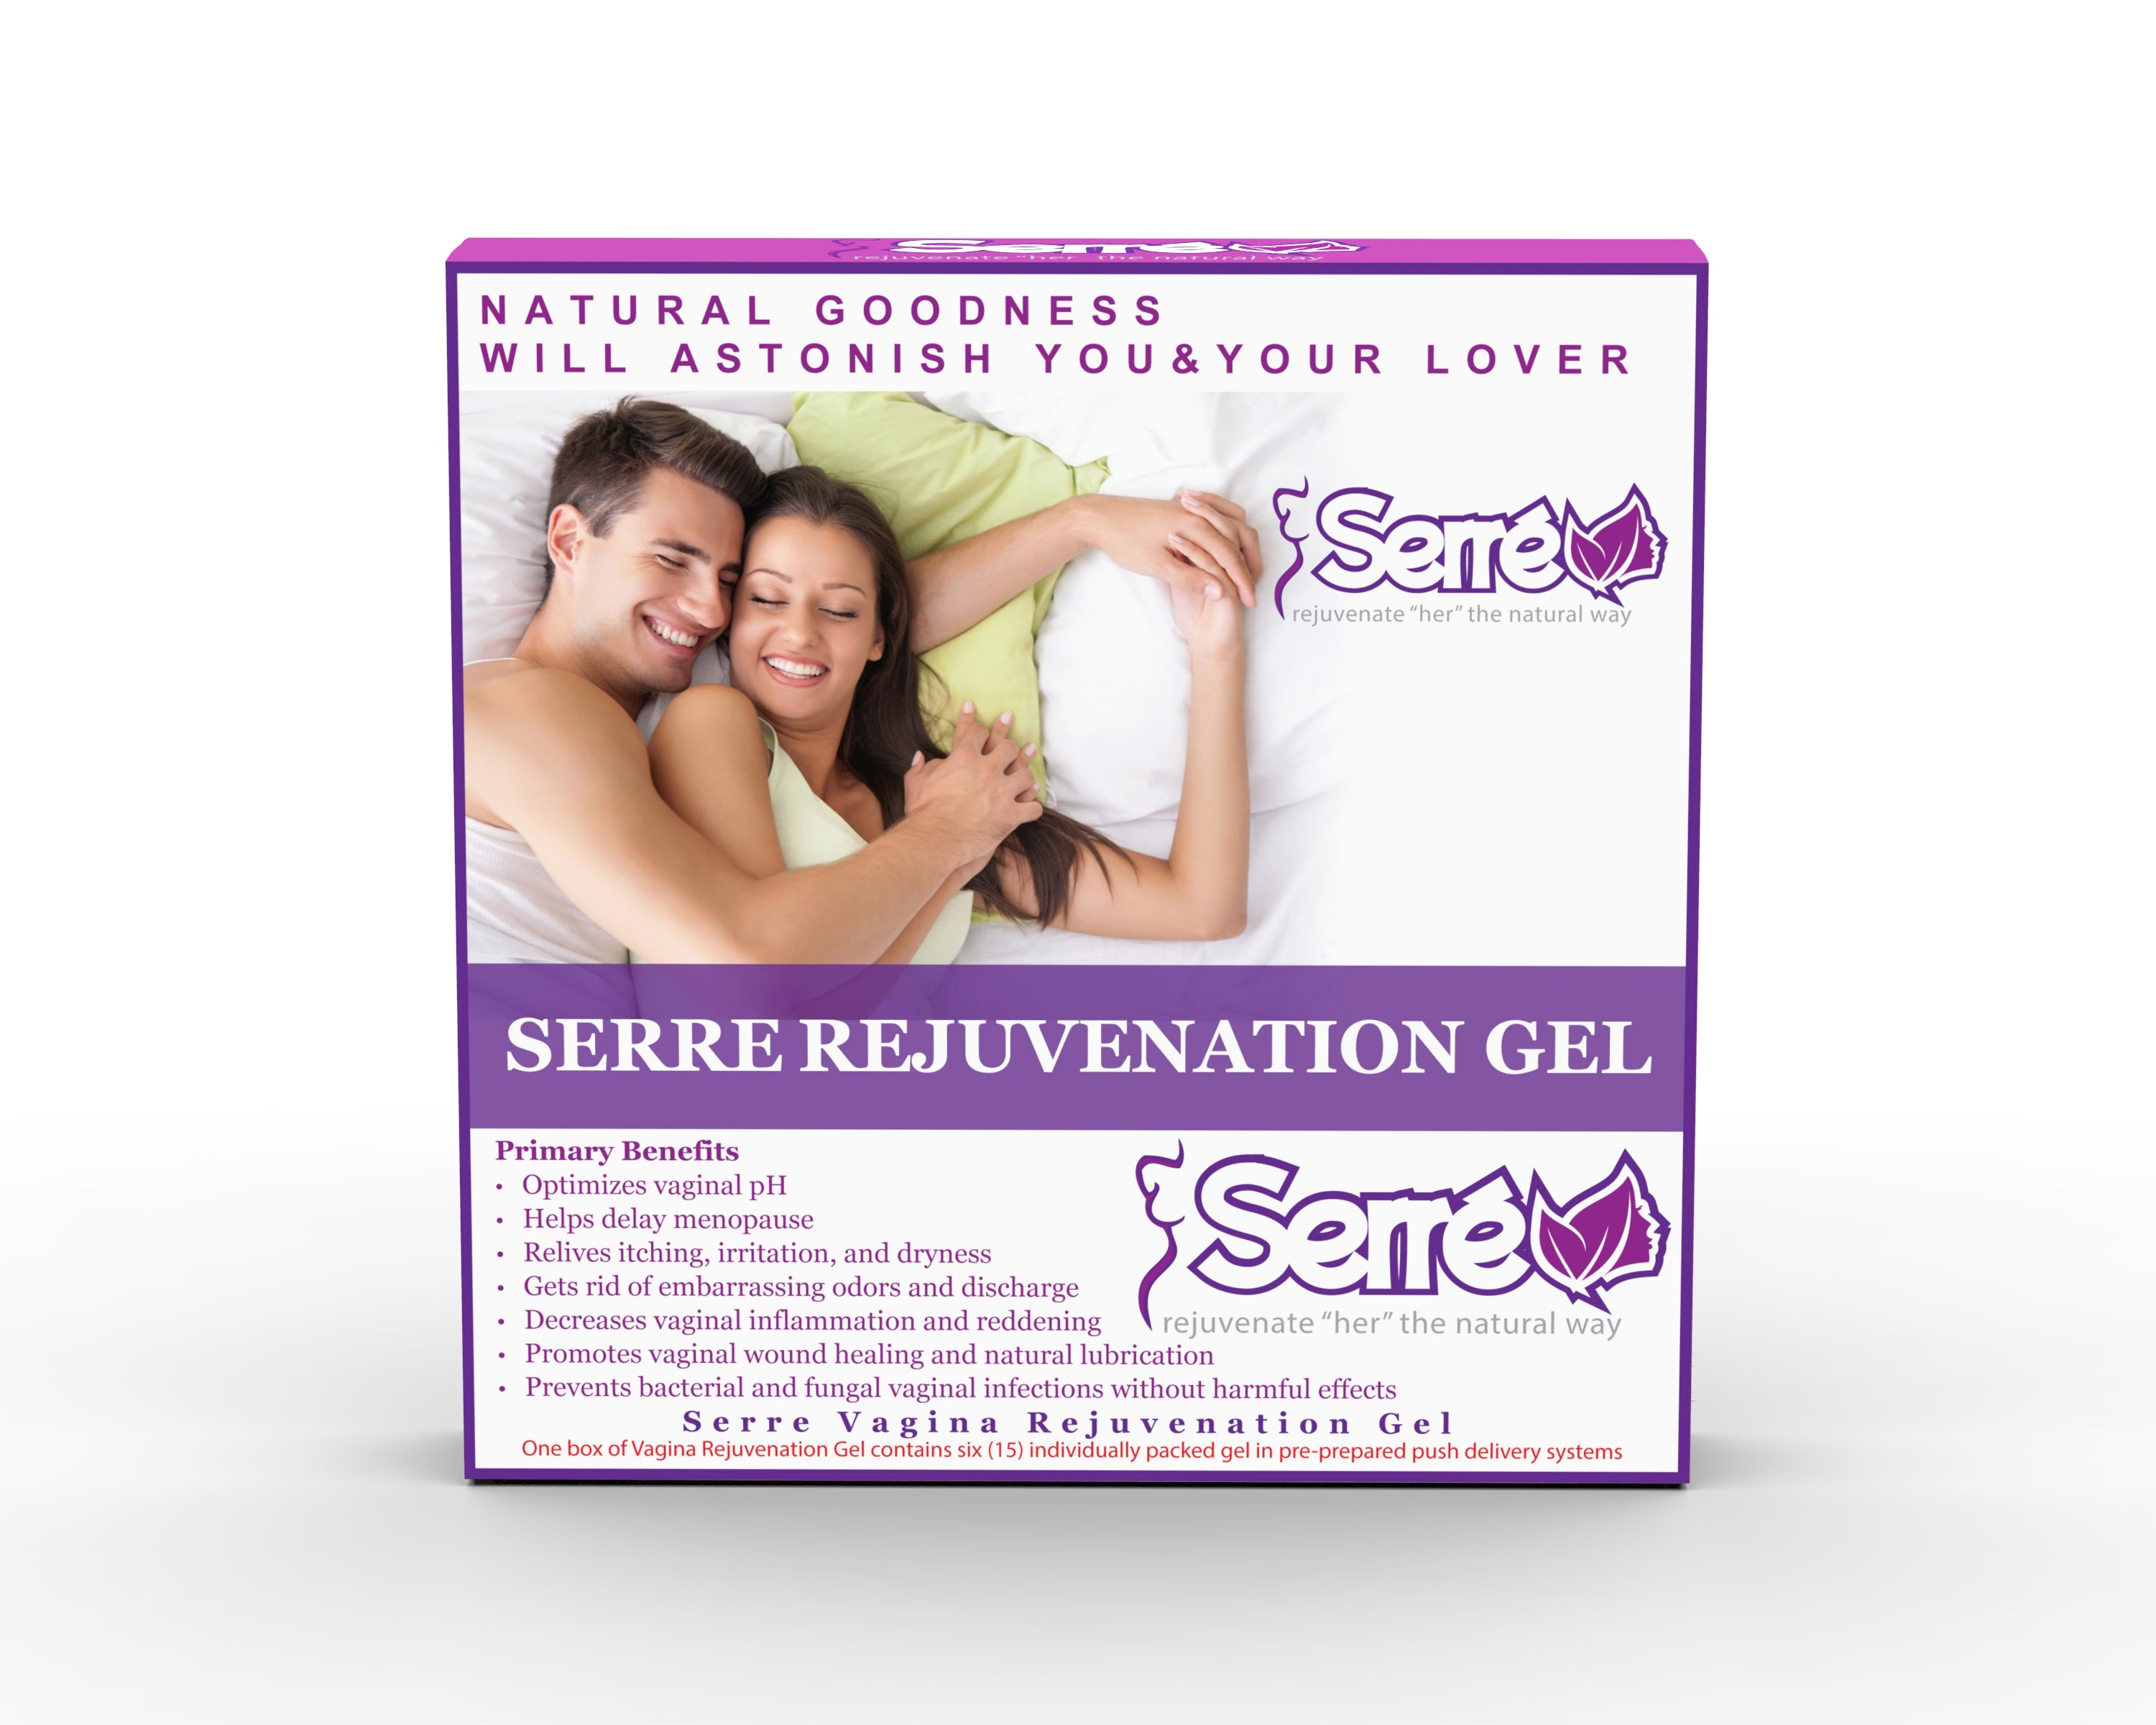 Serre Vagina Rejuvenation Gel